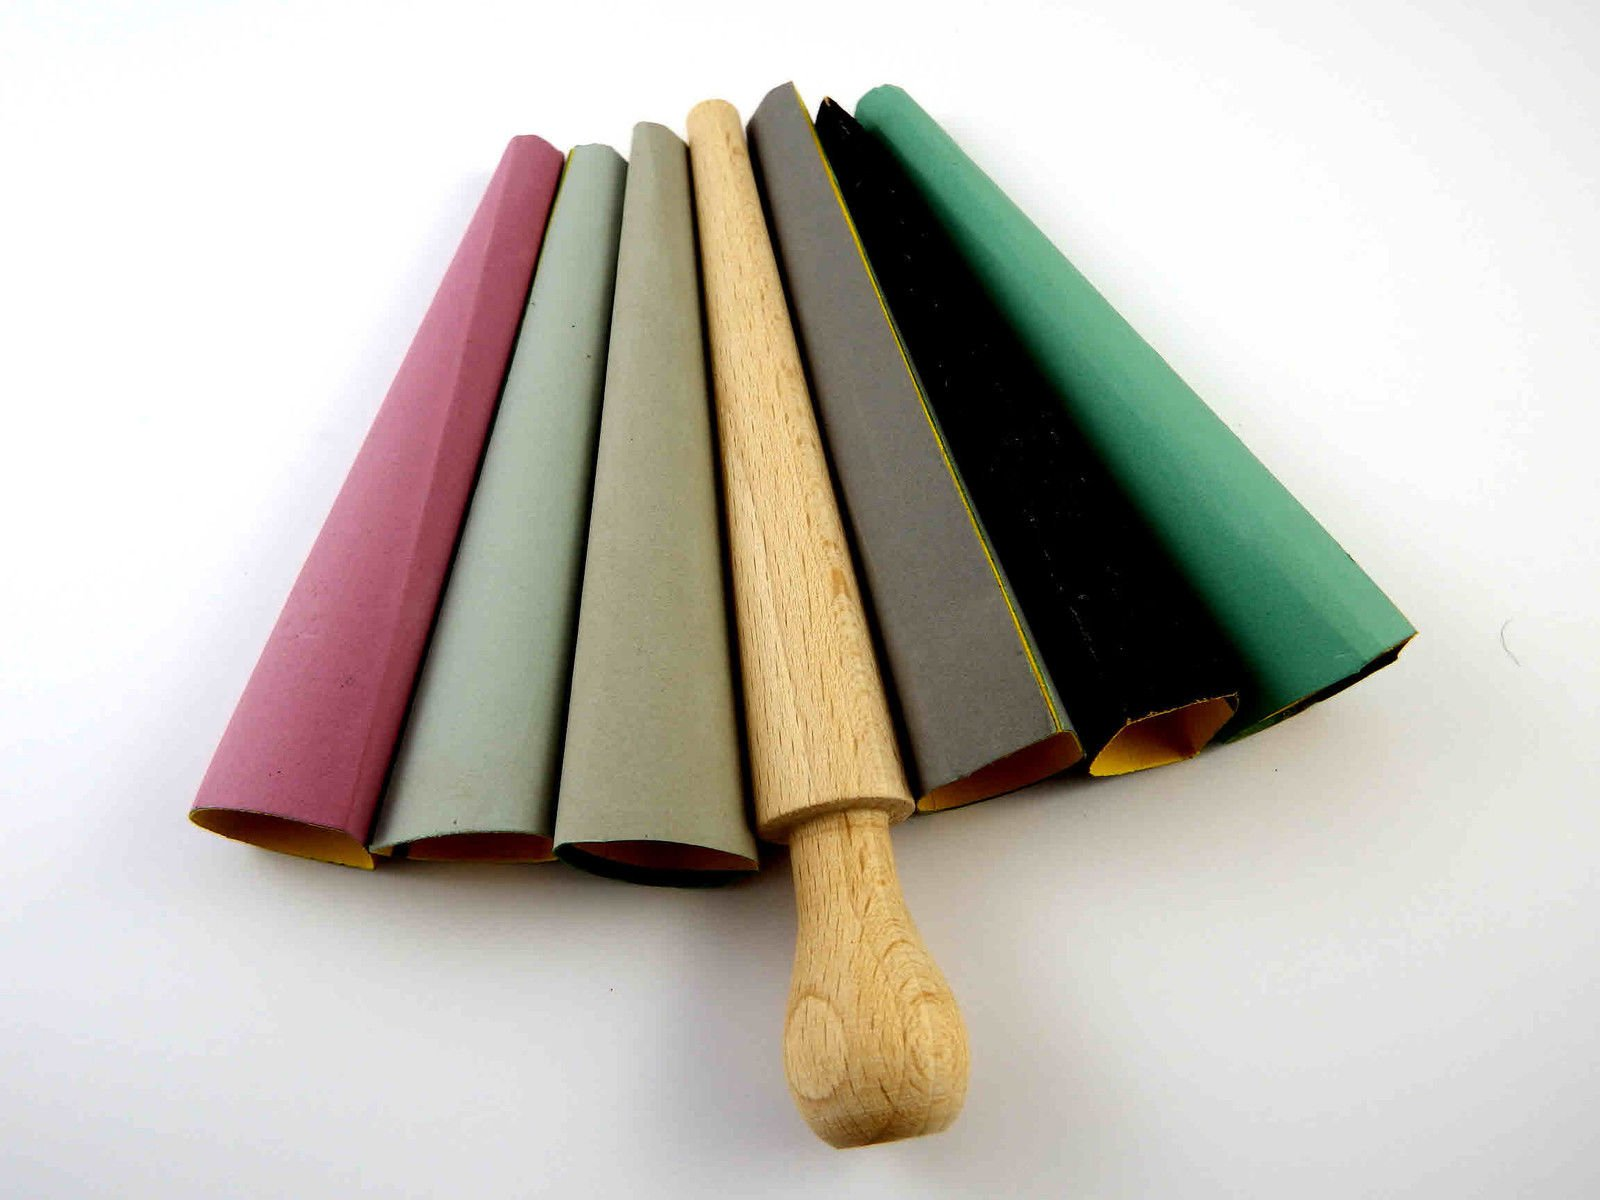 Emery cone sticks various grit rough fine jewellers hobby craft sand paper tool